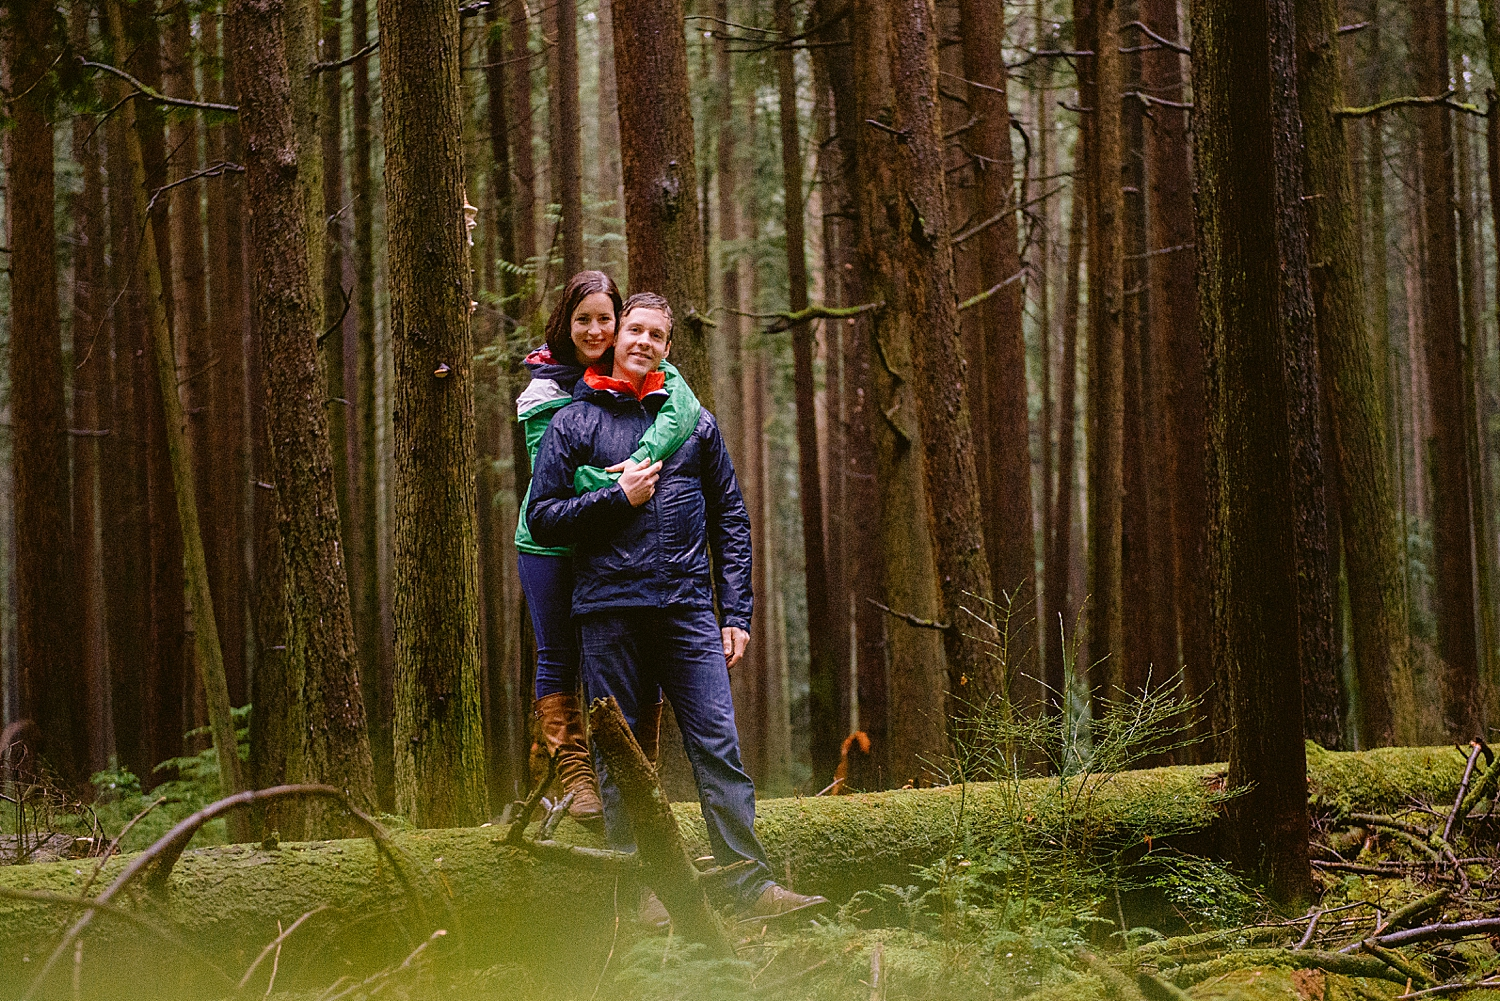 british columbia - pacific spirit park - engagement shoot - vancouver b.c.- maylies lang photography -10.jpg